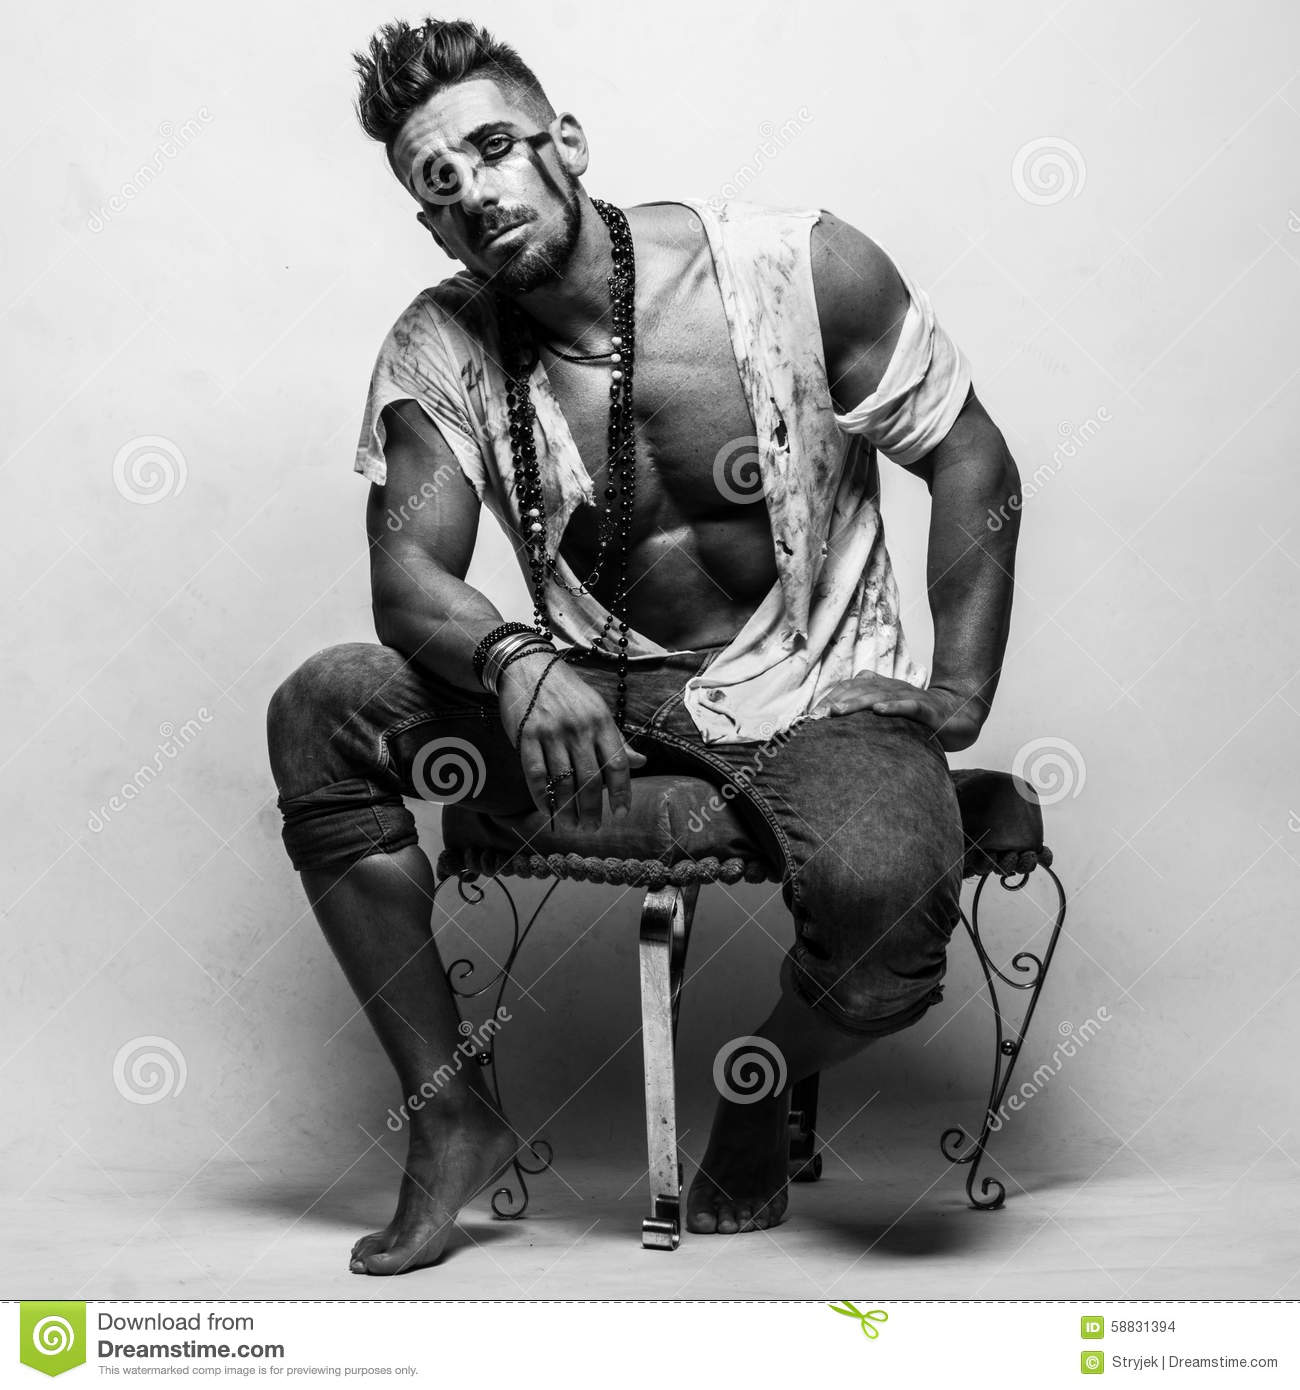 Muscular Man In Ragged Clothes Sitting On A Chair Stock ...  Ragged Clothes